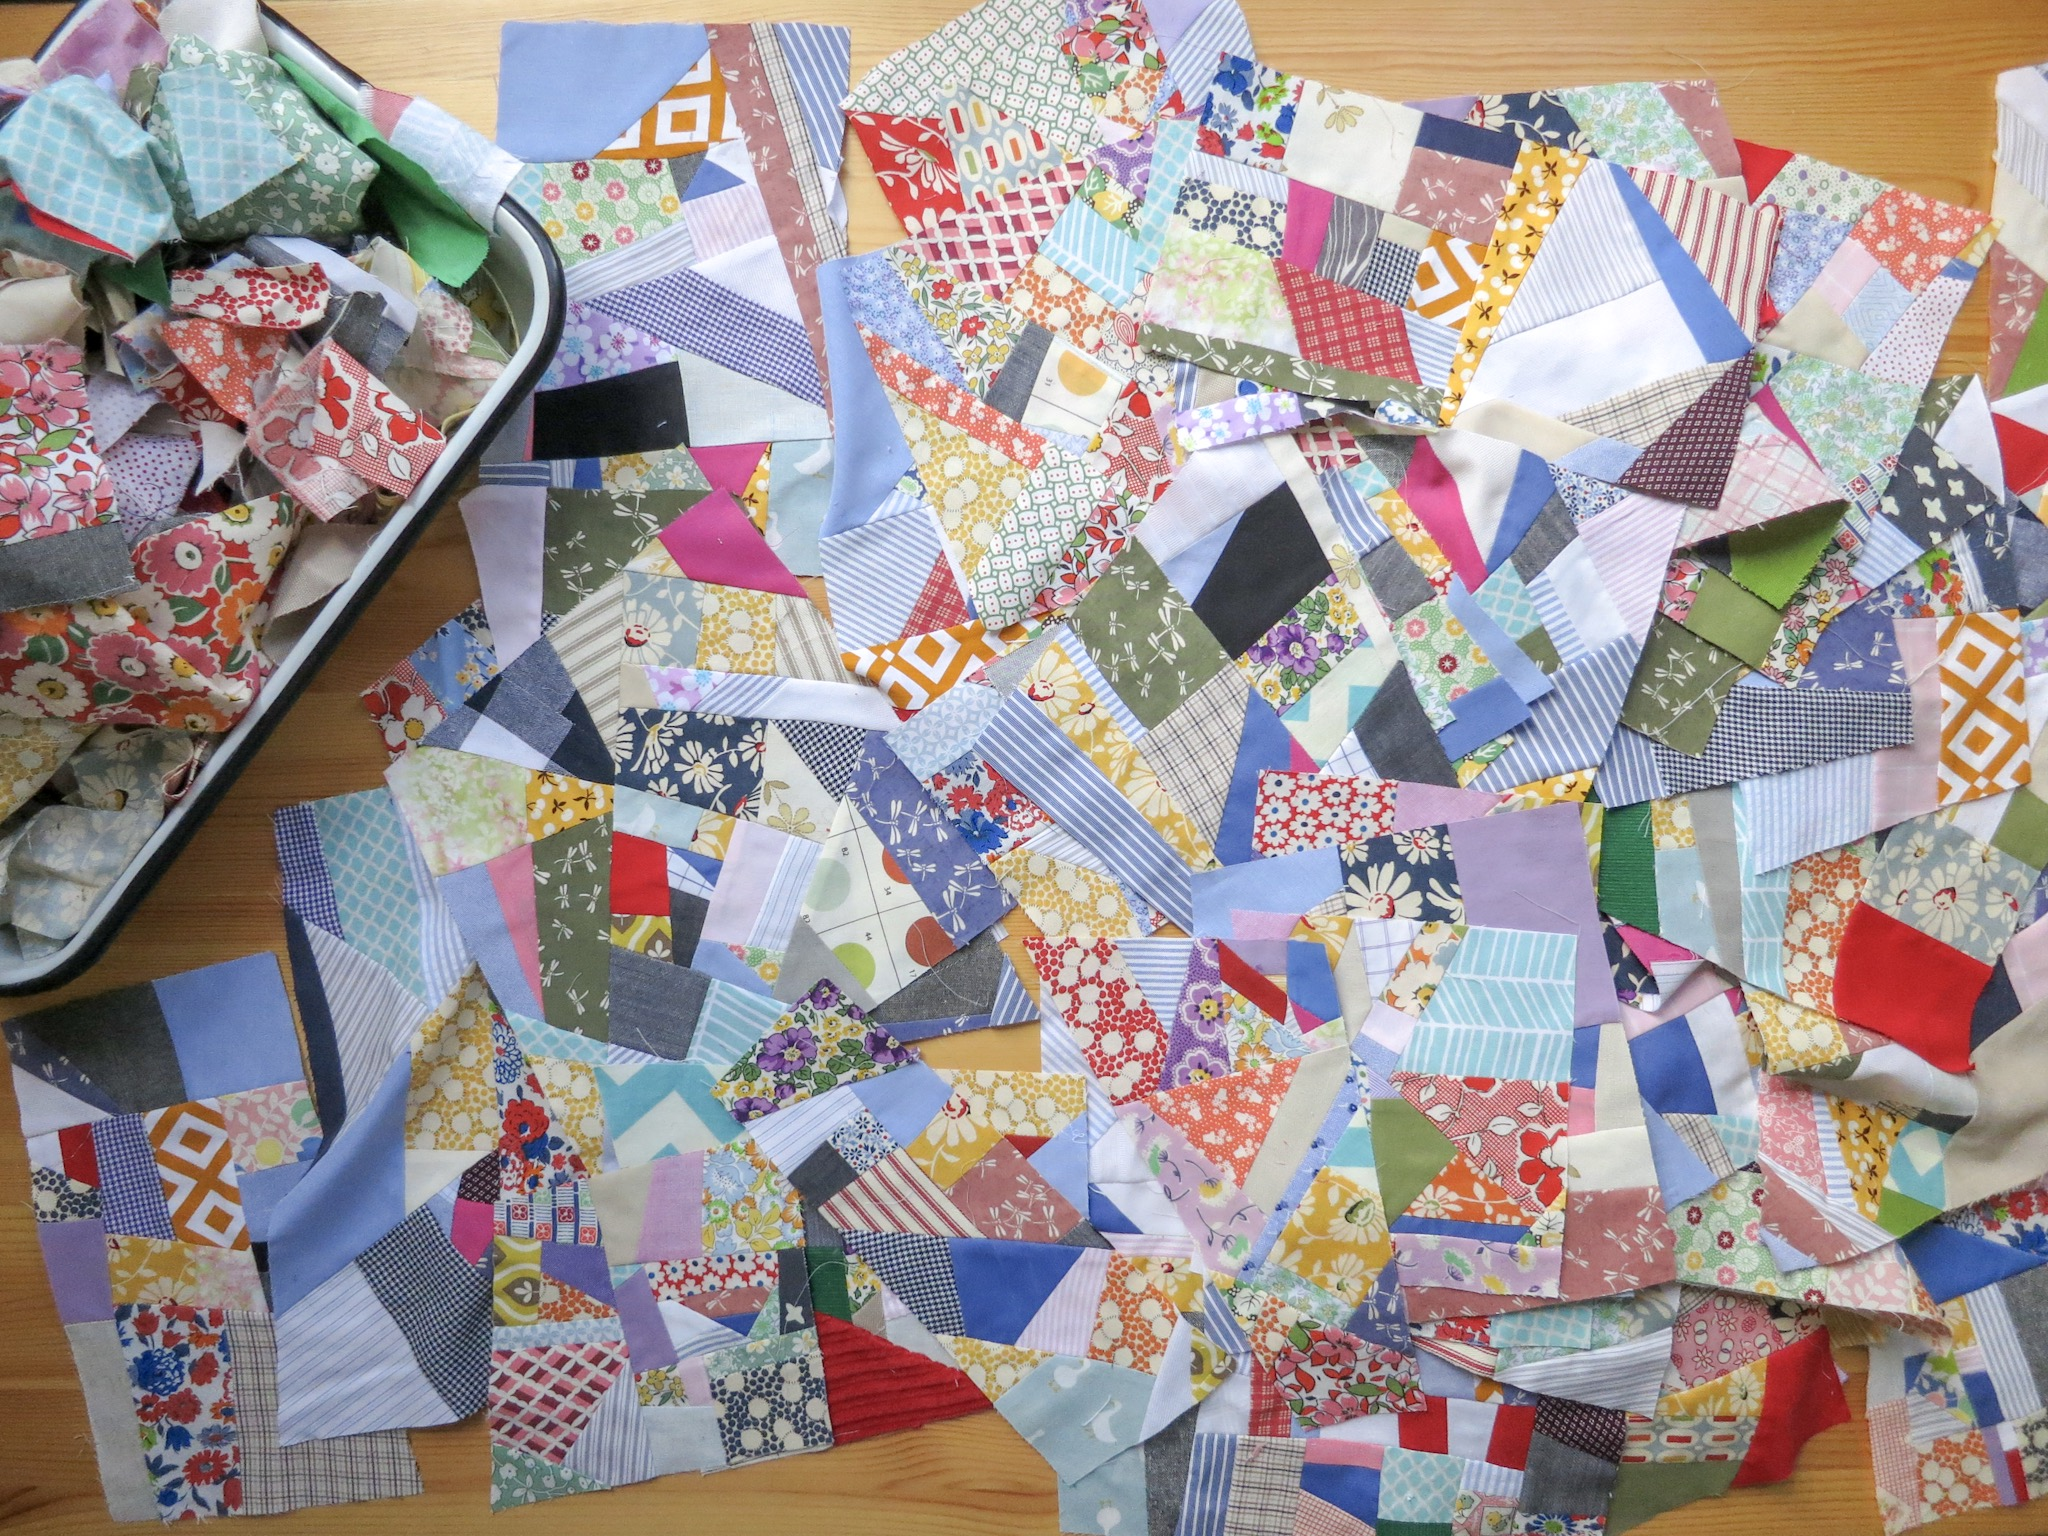 Quilt blocks made for the 100 Days Project